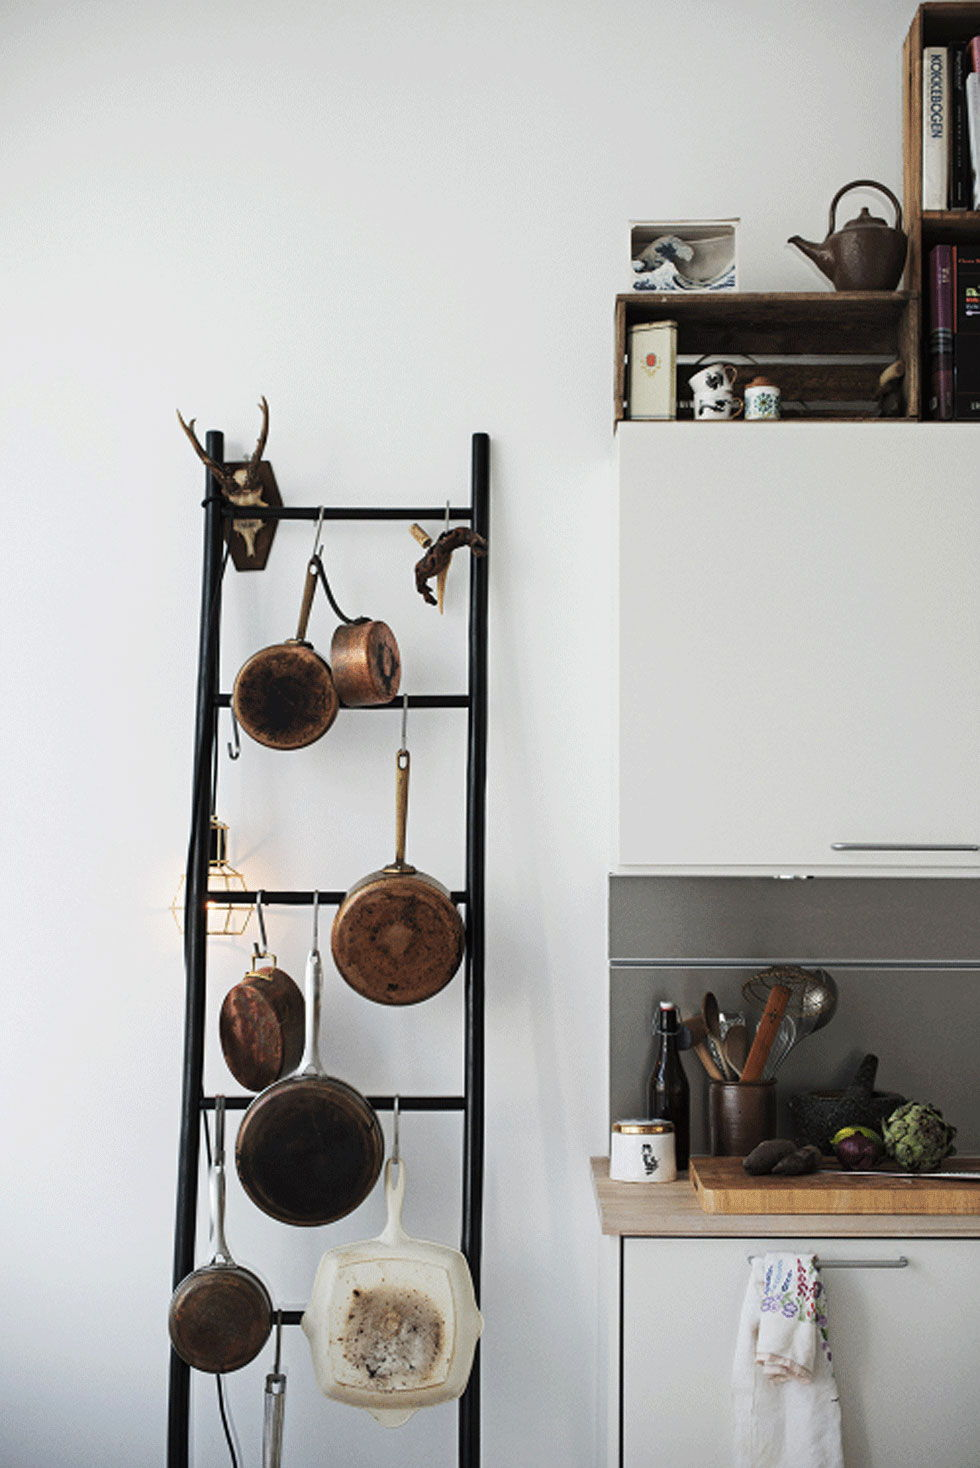 kitchen pots hanging